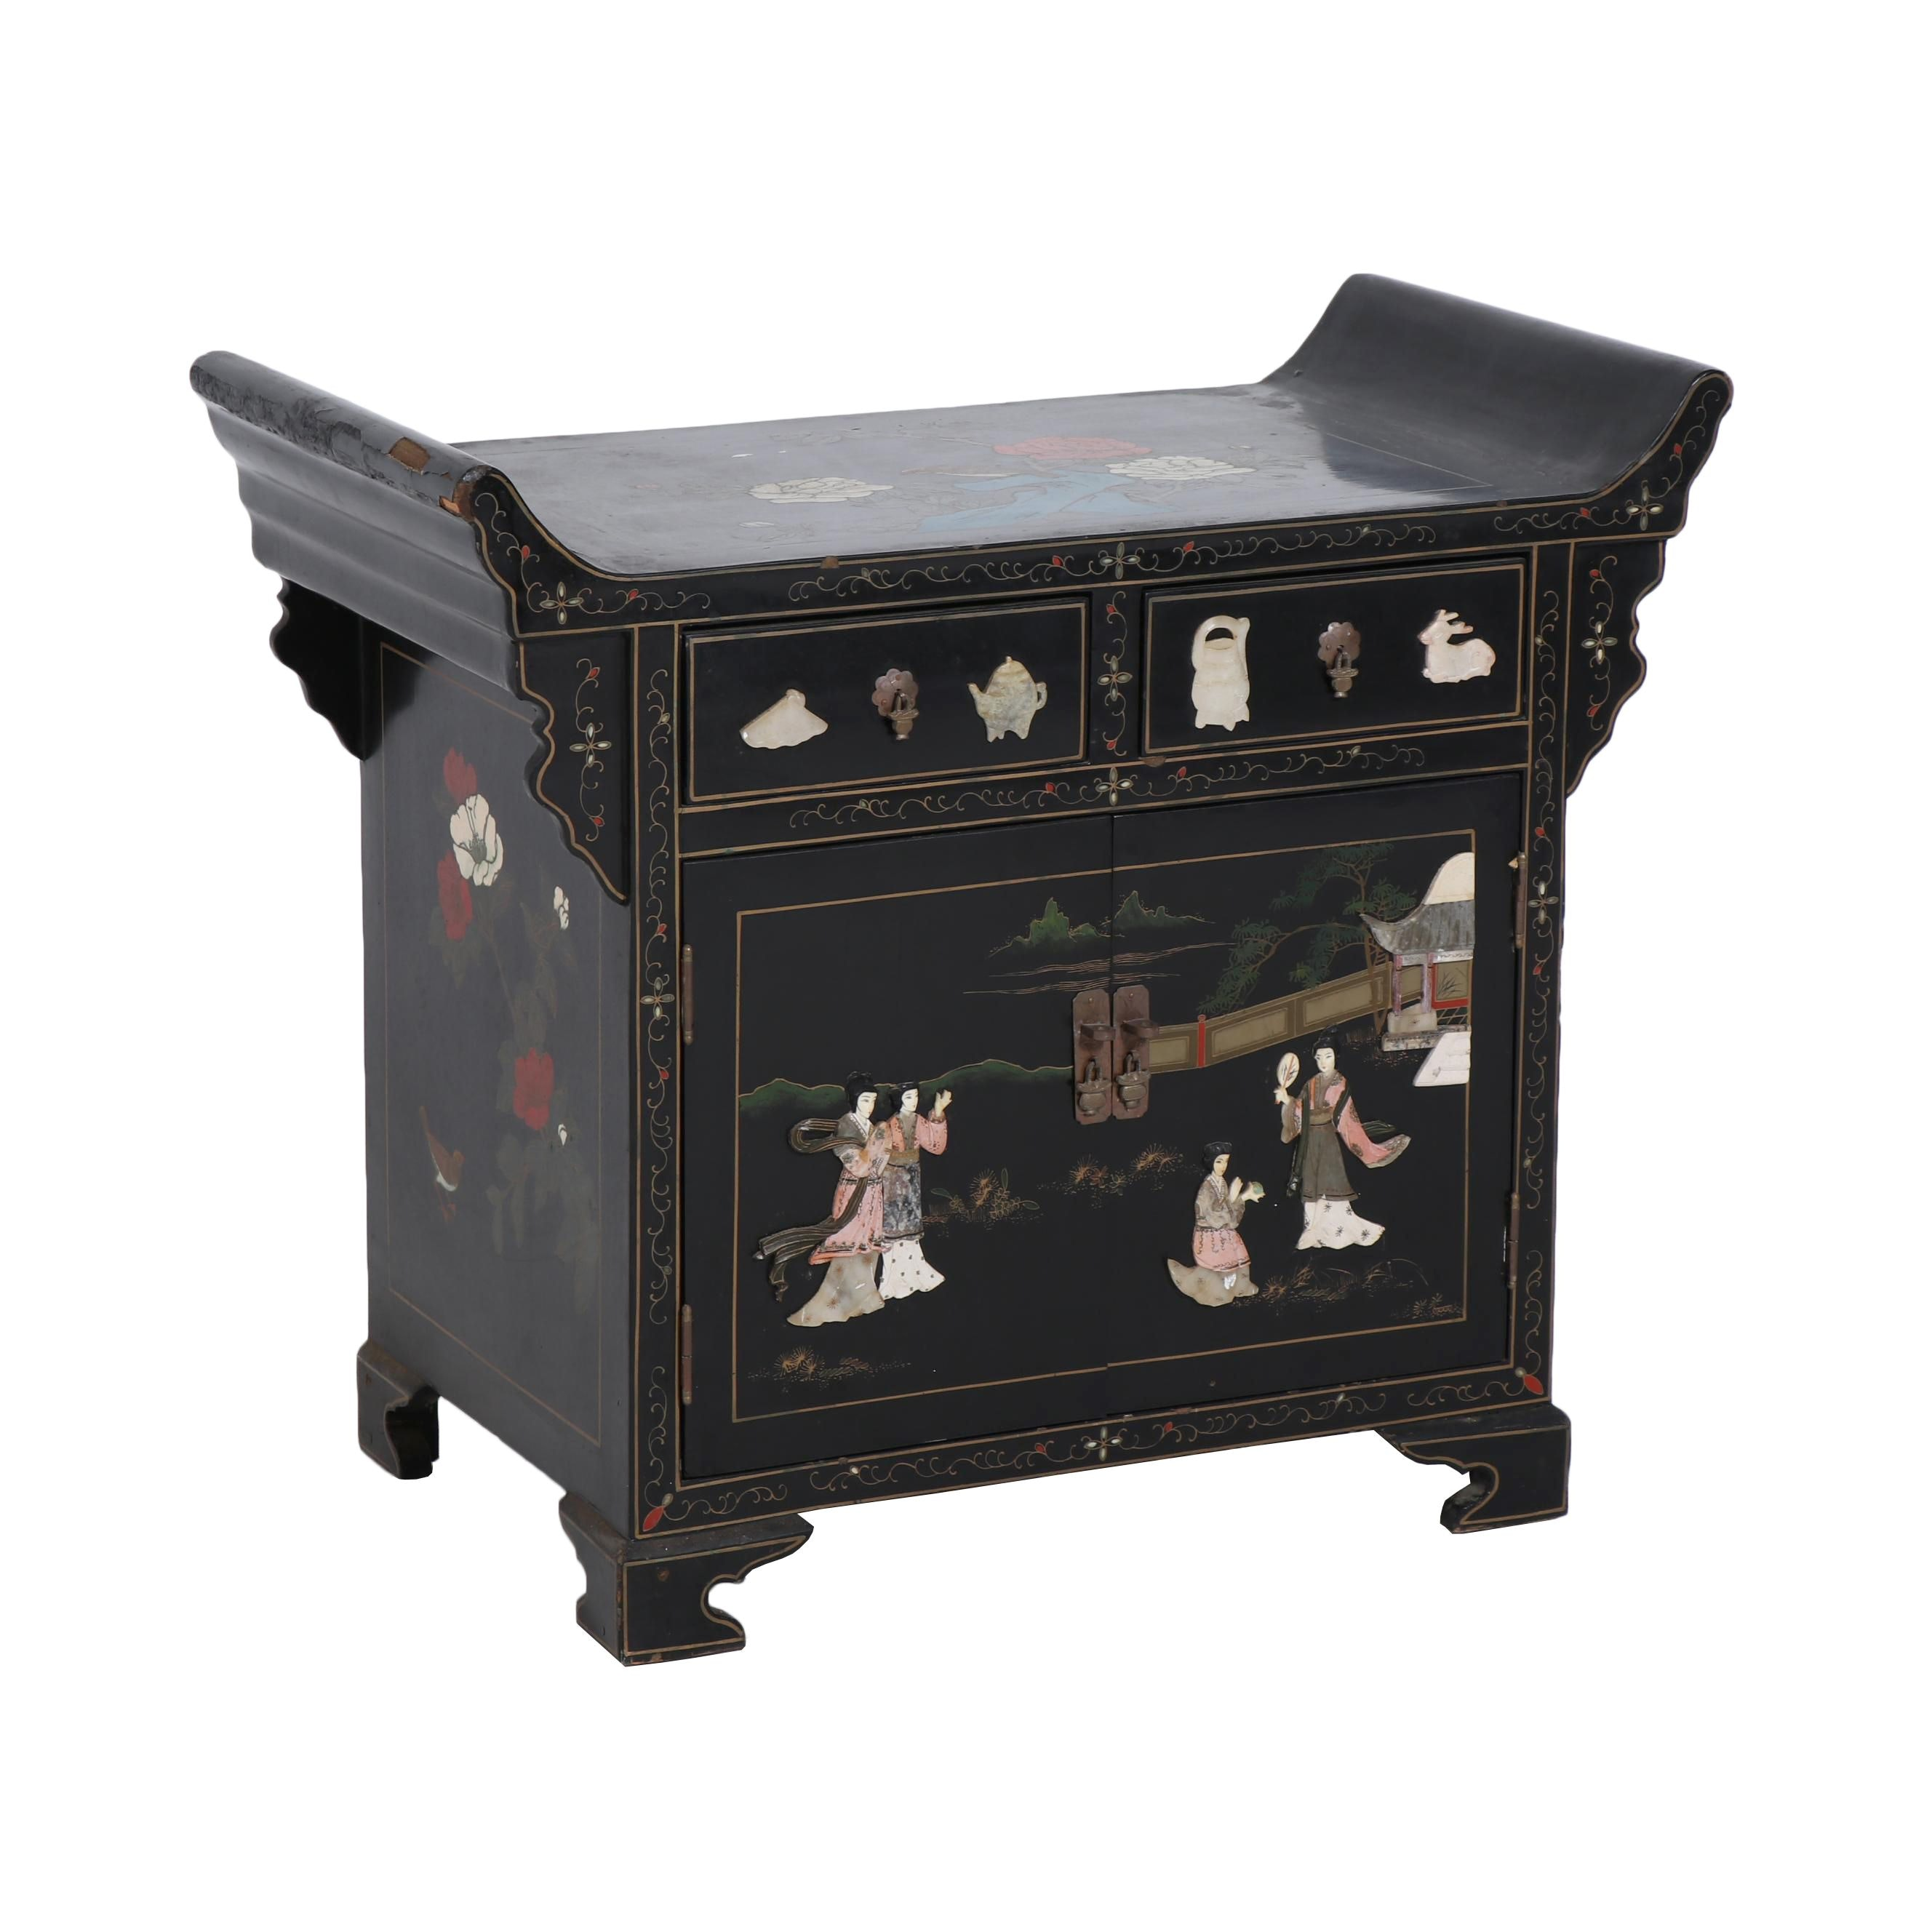 Chinese Lacquer Side Table with Inlaid Decoration